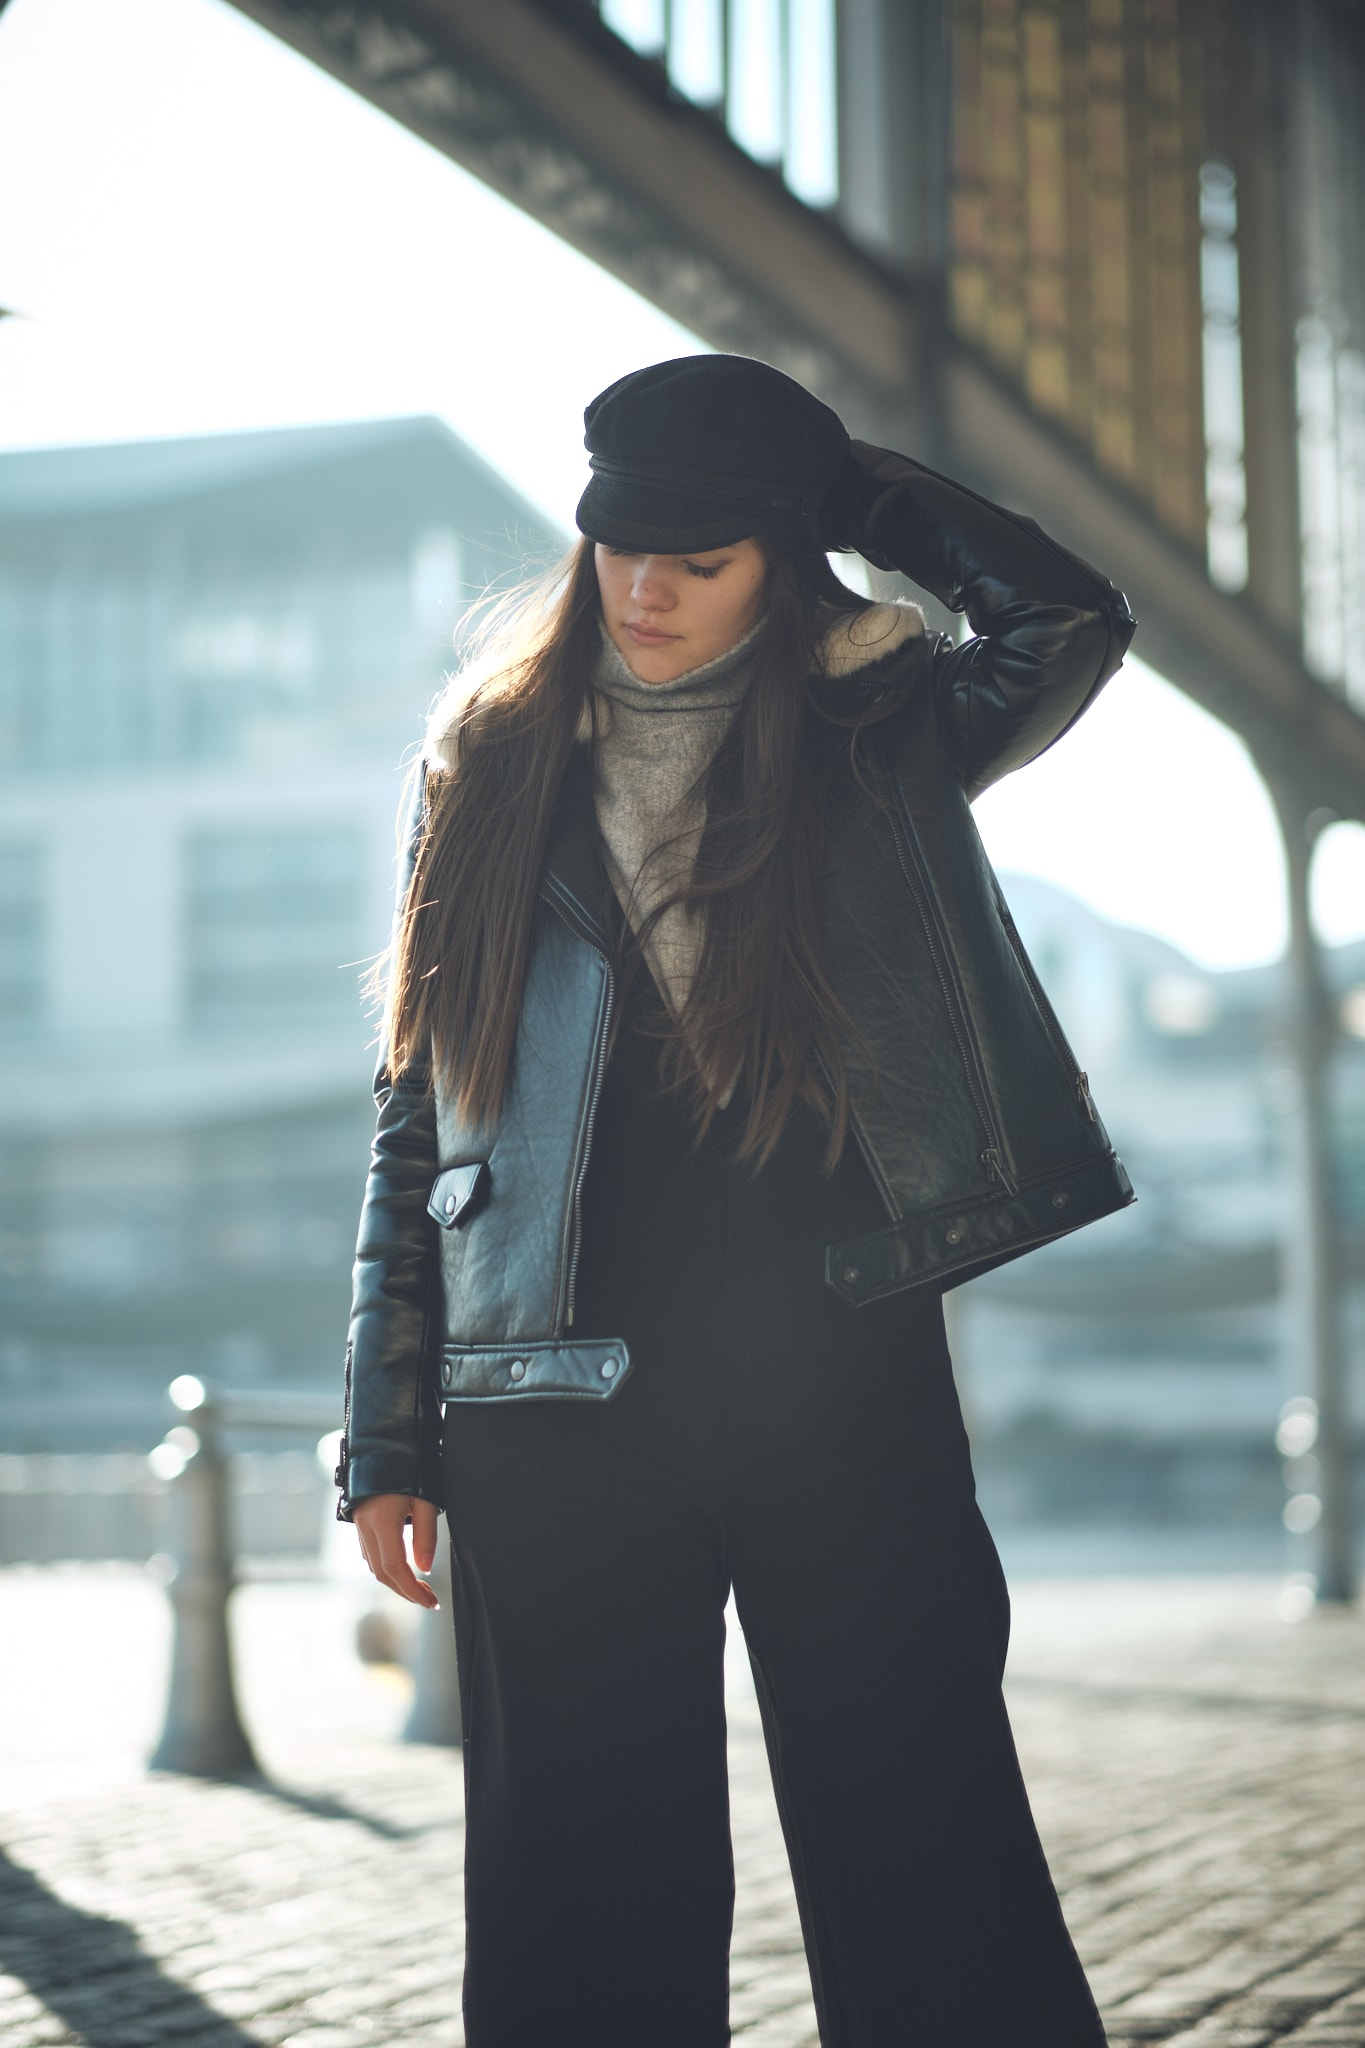 casquette-marin-fashion-blogger-blog-mode-paris-14-min